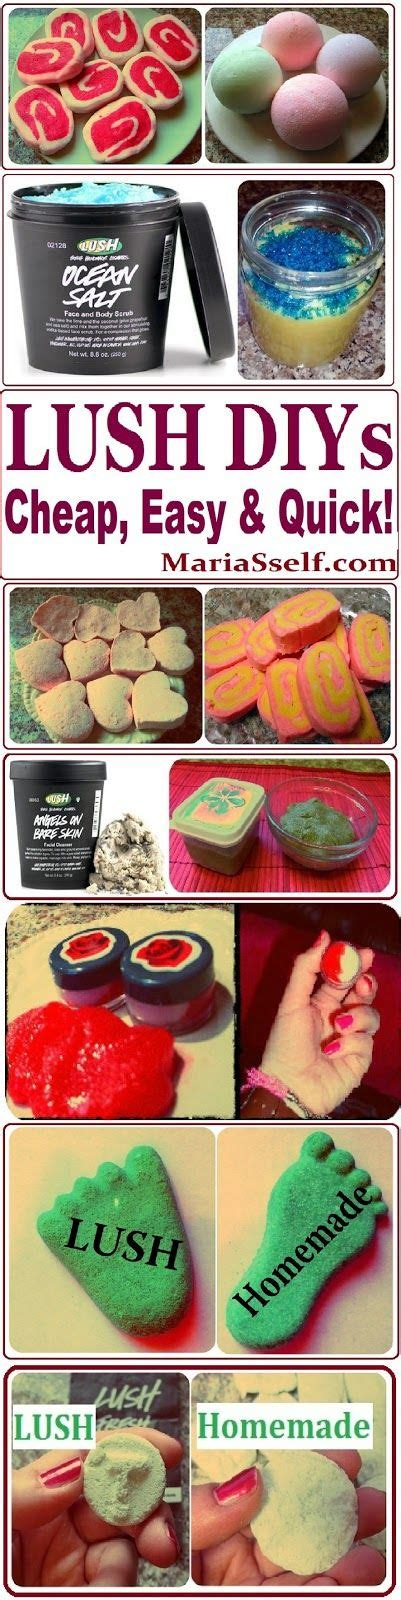 cheap valentines recipes diy lush product recipes how to make them cheap easy